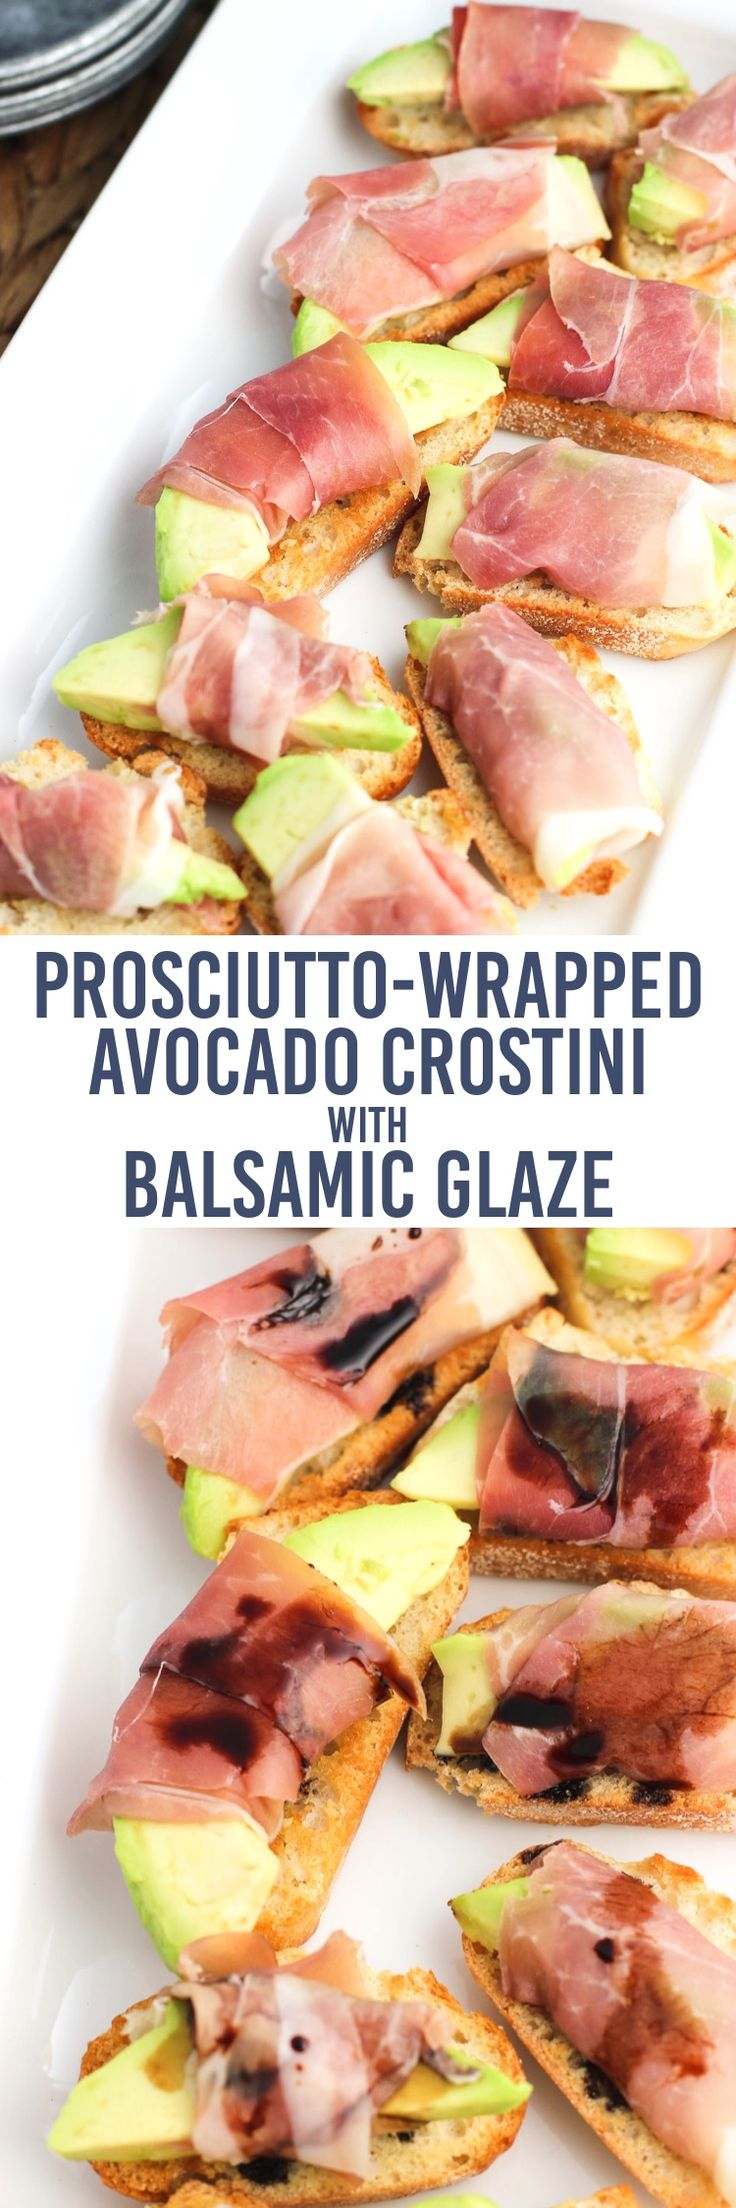 Avocado Prosciutto Crostini Recipe — Dishmaps